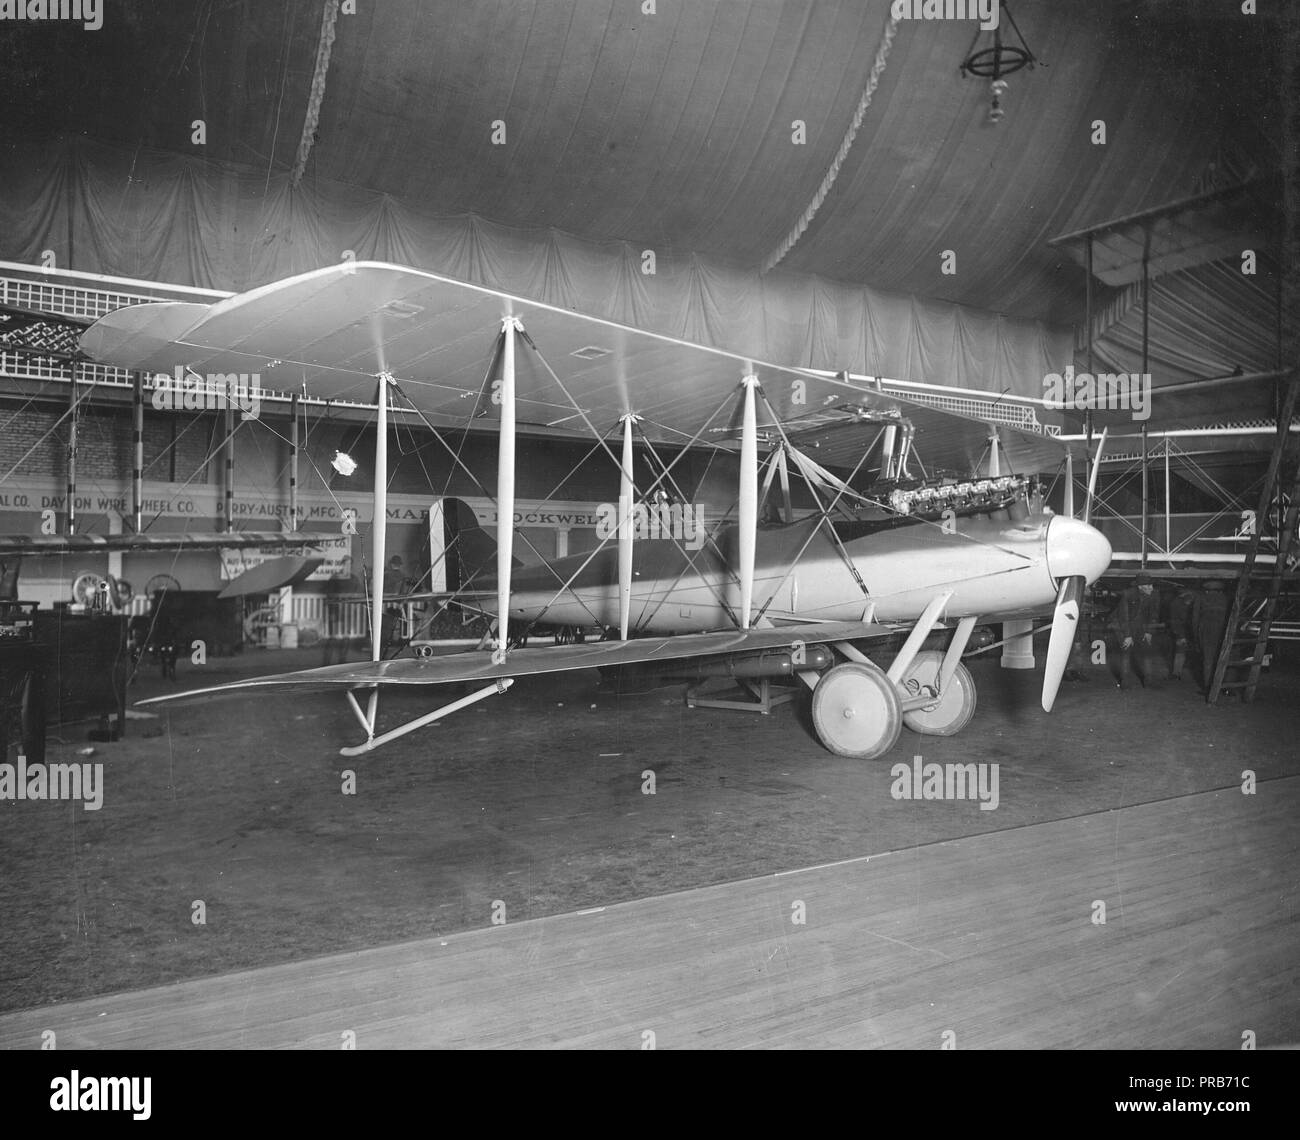 1919 - G-2 combat plane revised and known as the 'Shark'. On exhibition at Aero Show, New York - Stock Image